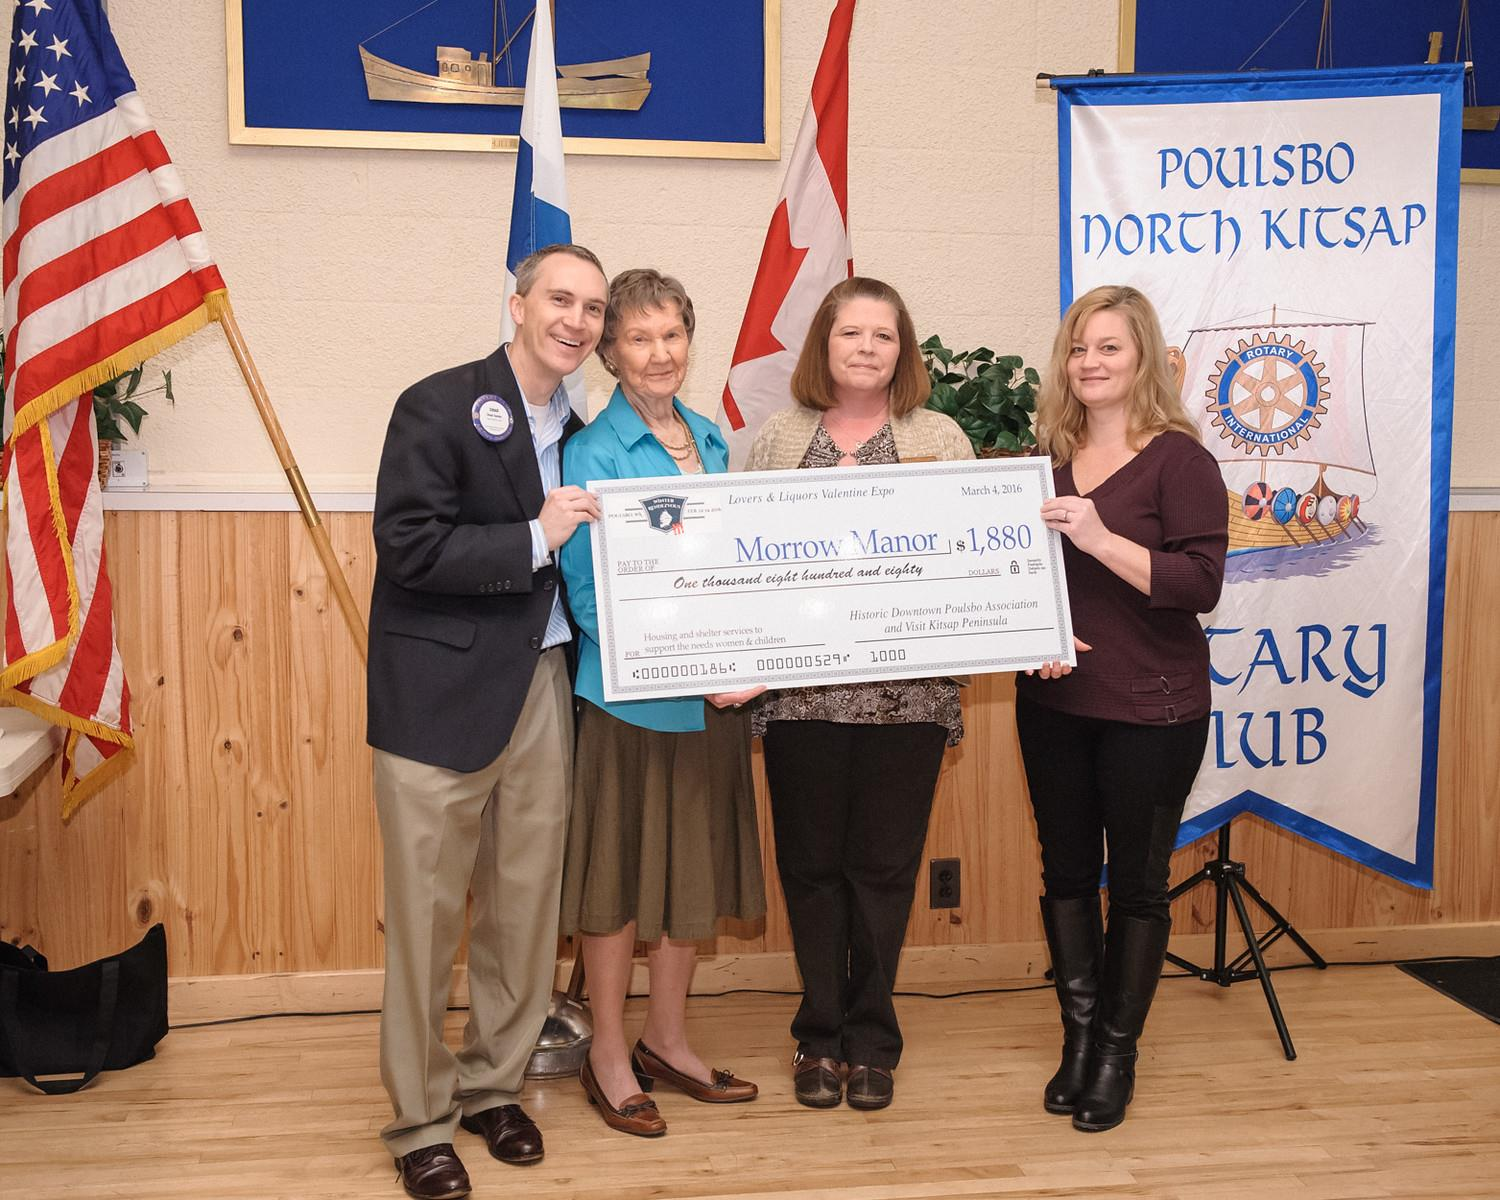 Morrow Manor receives donation from the Historic Downtown Poulsbo Association and Visit Kitsap Peninsula